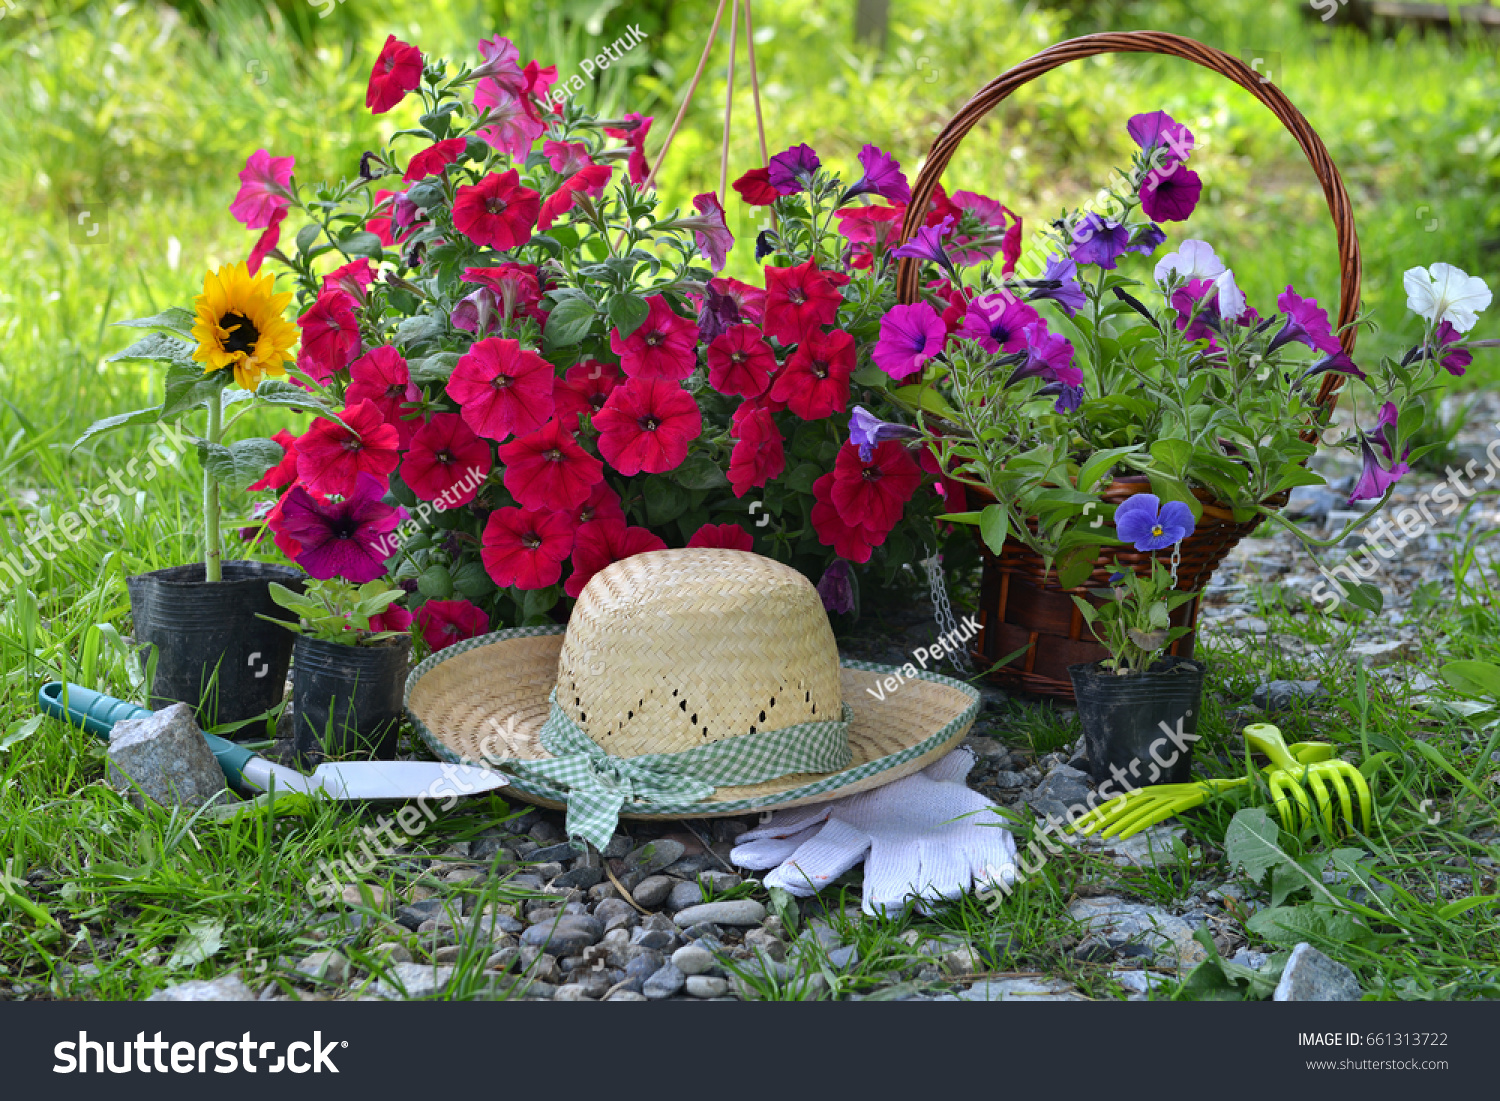 Beautiful Summer Background With Flowers, Garden Tools And Straw Hat  Against Sunny Grass Background.